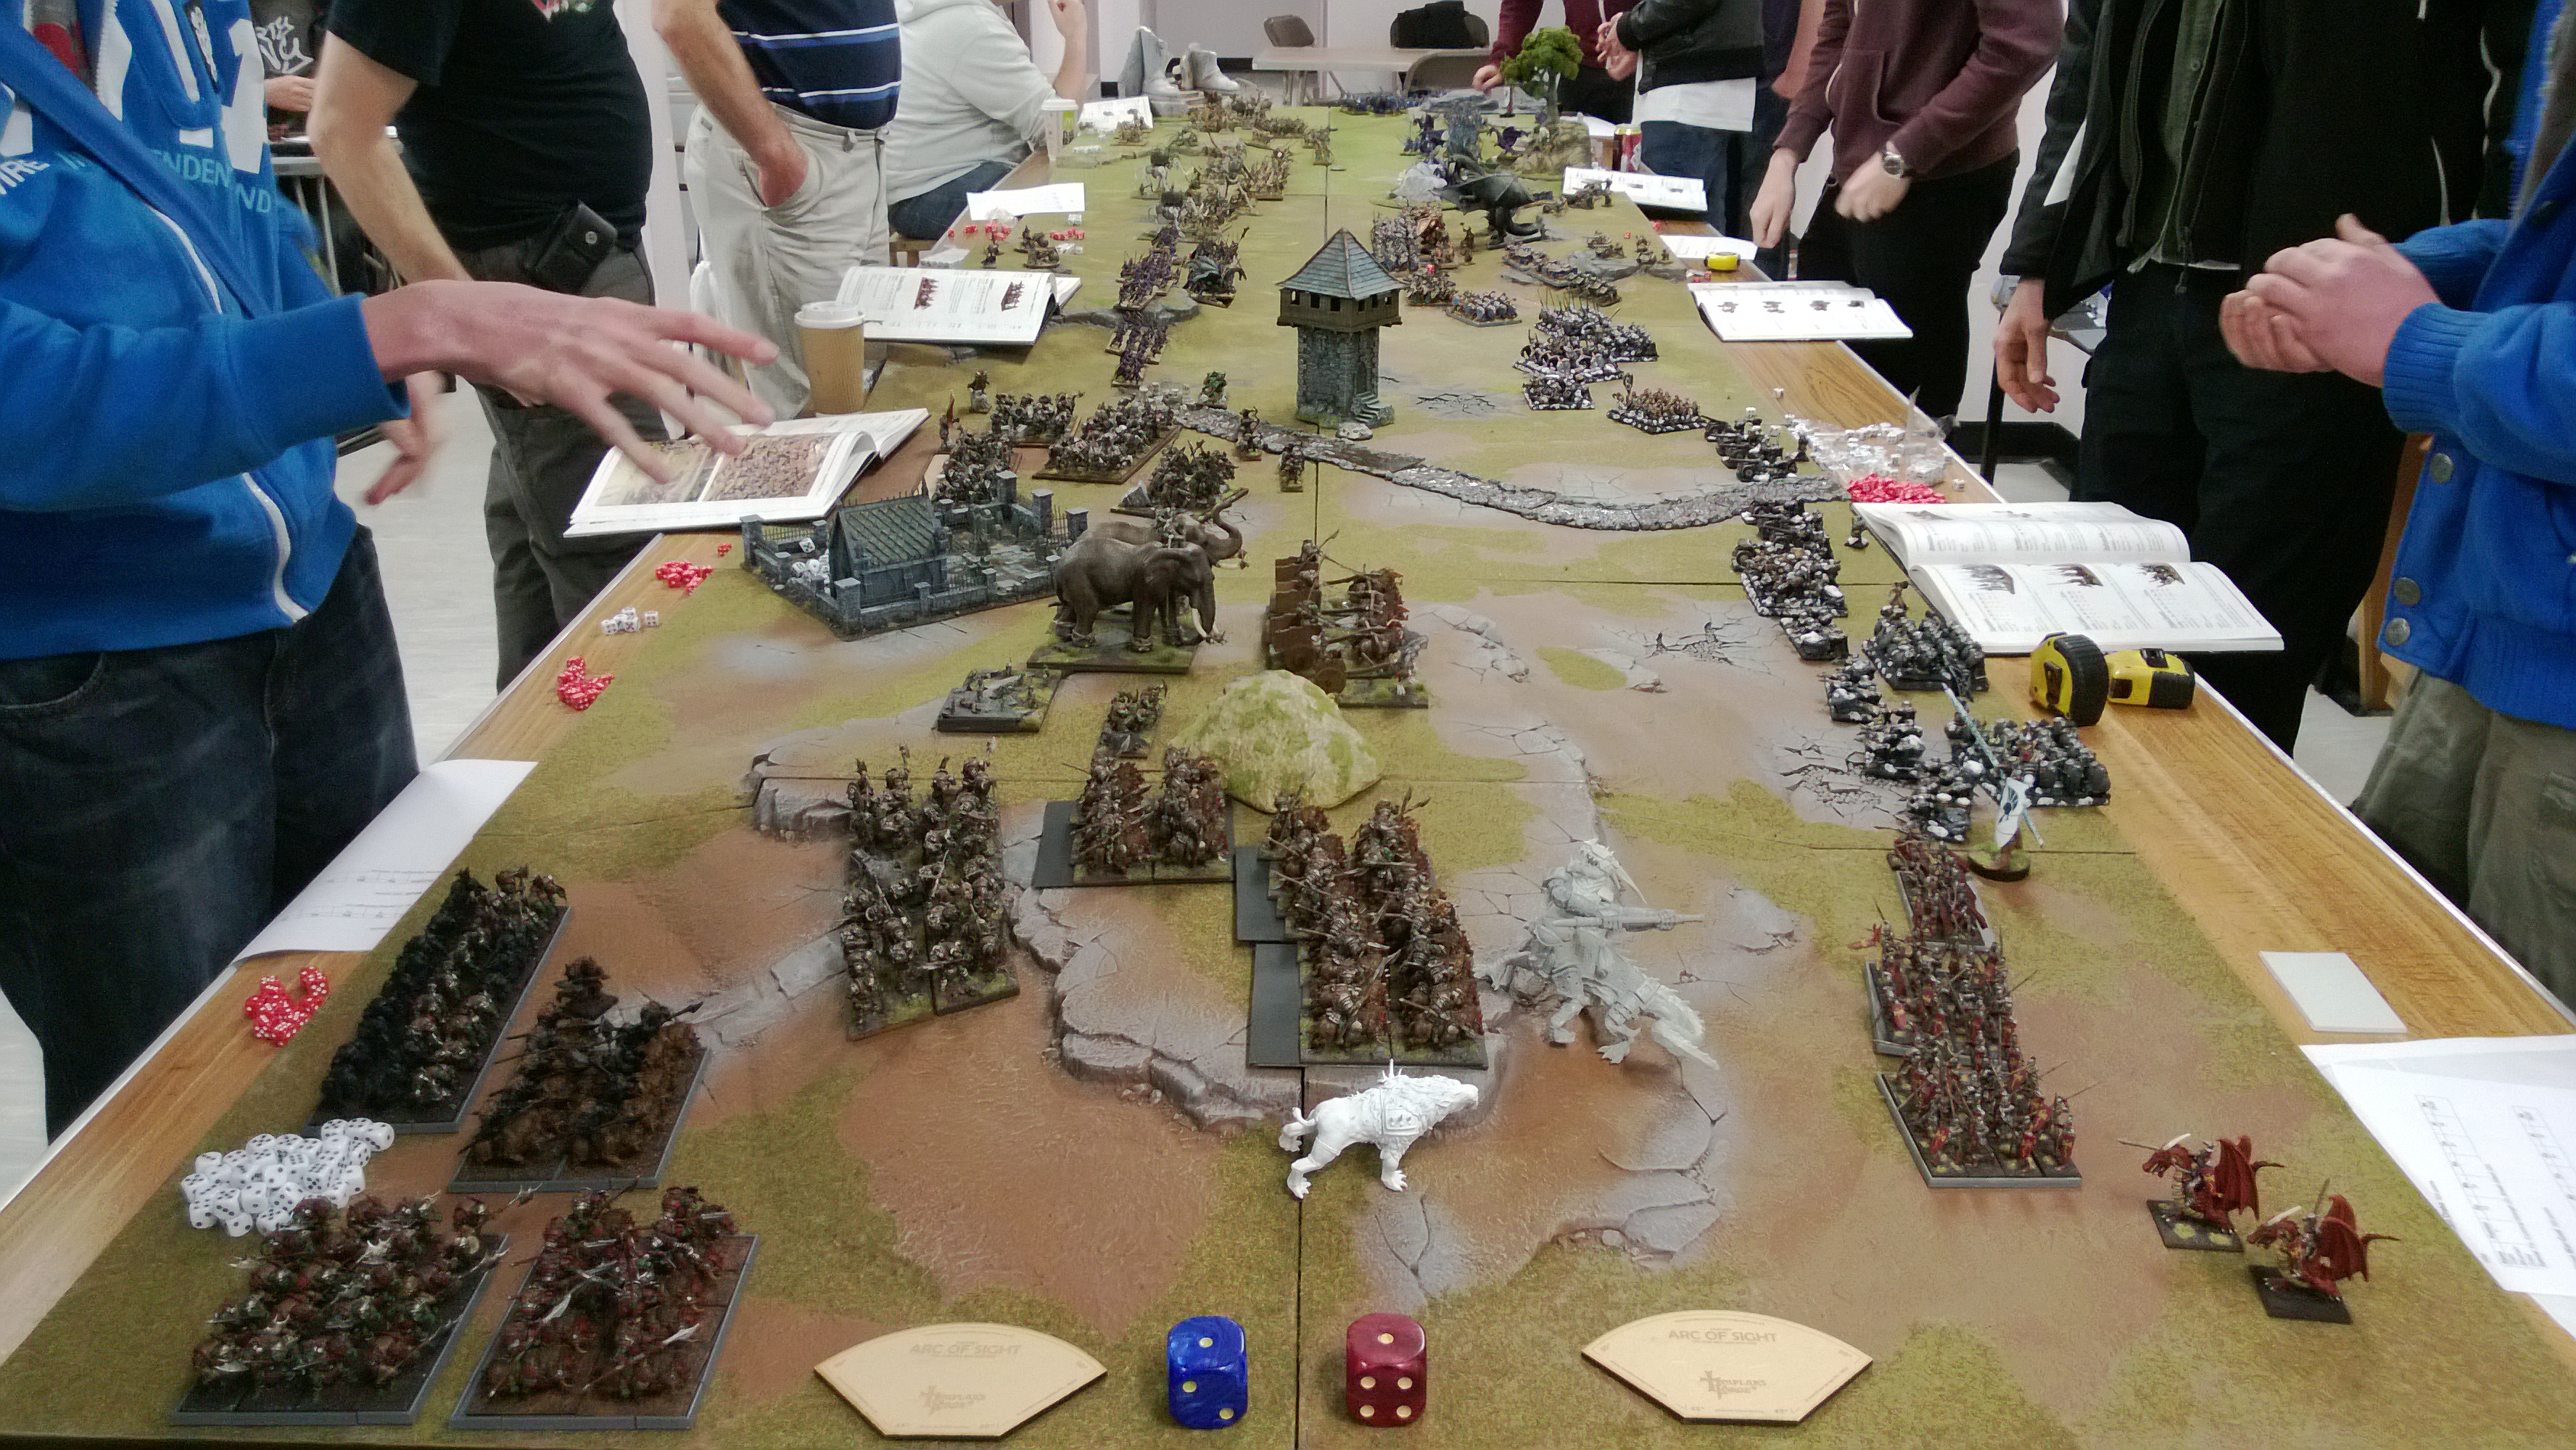 This epic battle took place at the Mantic Open Day earlier this year - and was finished in just over four hours!